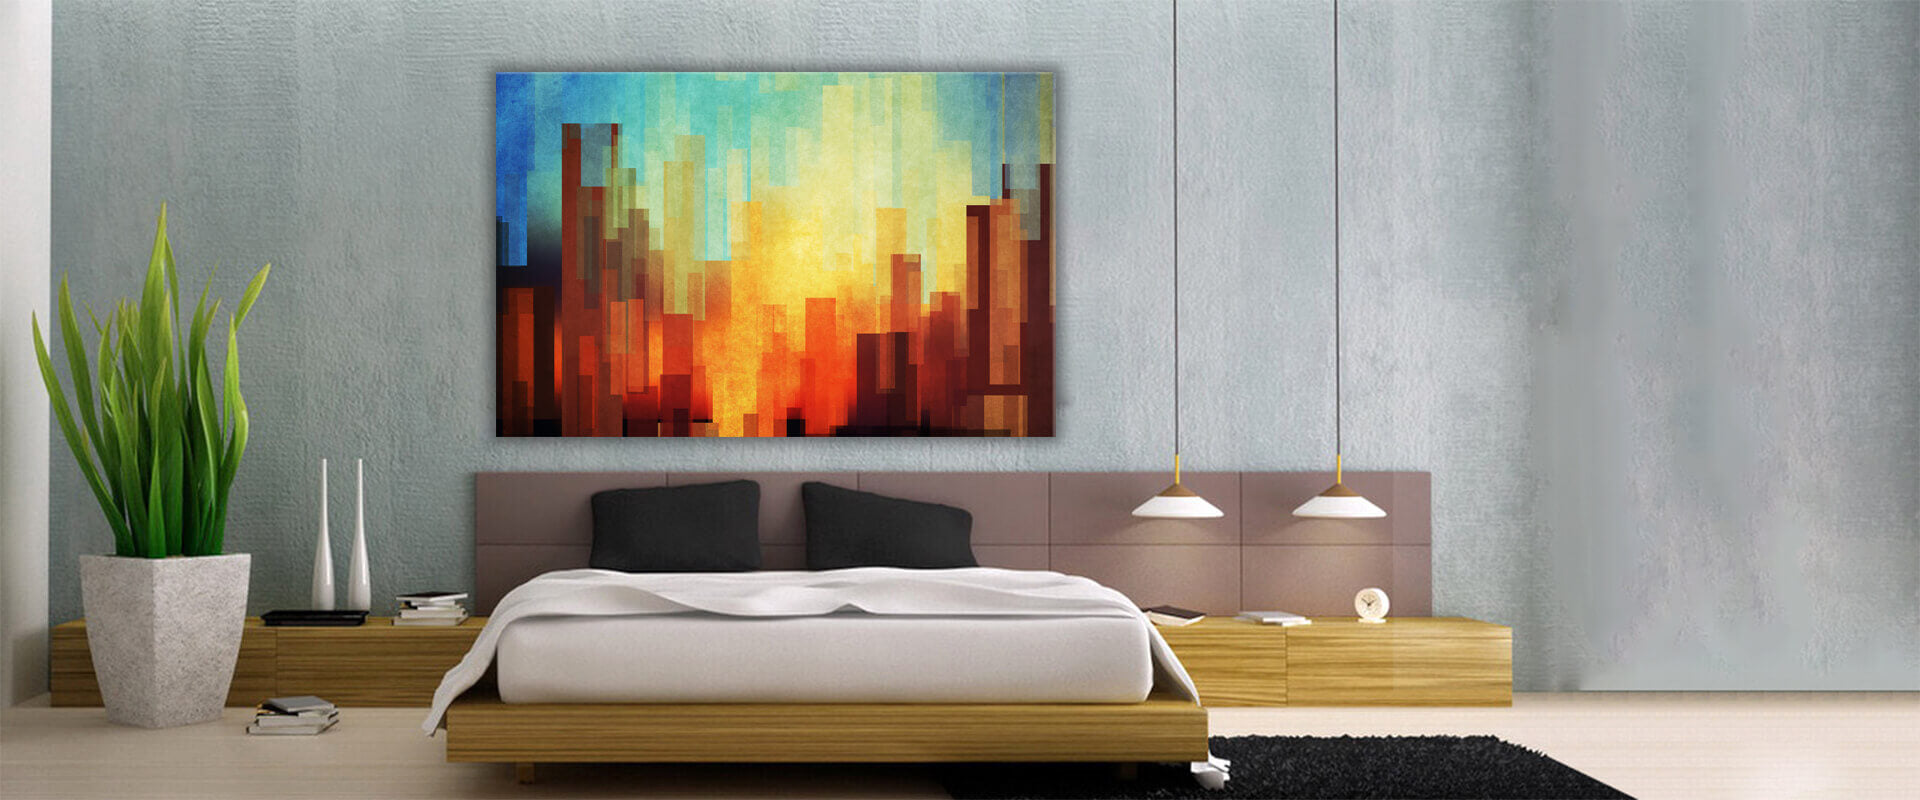 Bedroom Art Decor Buy Posters Frames Canvas Digital Art